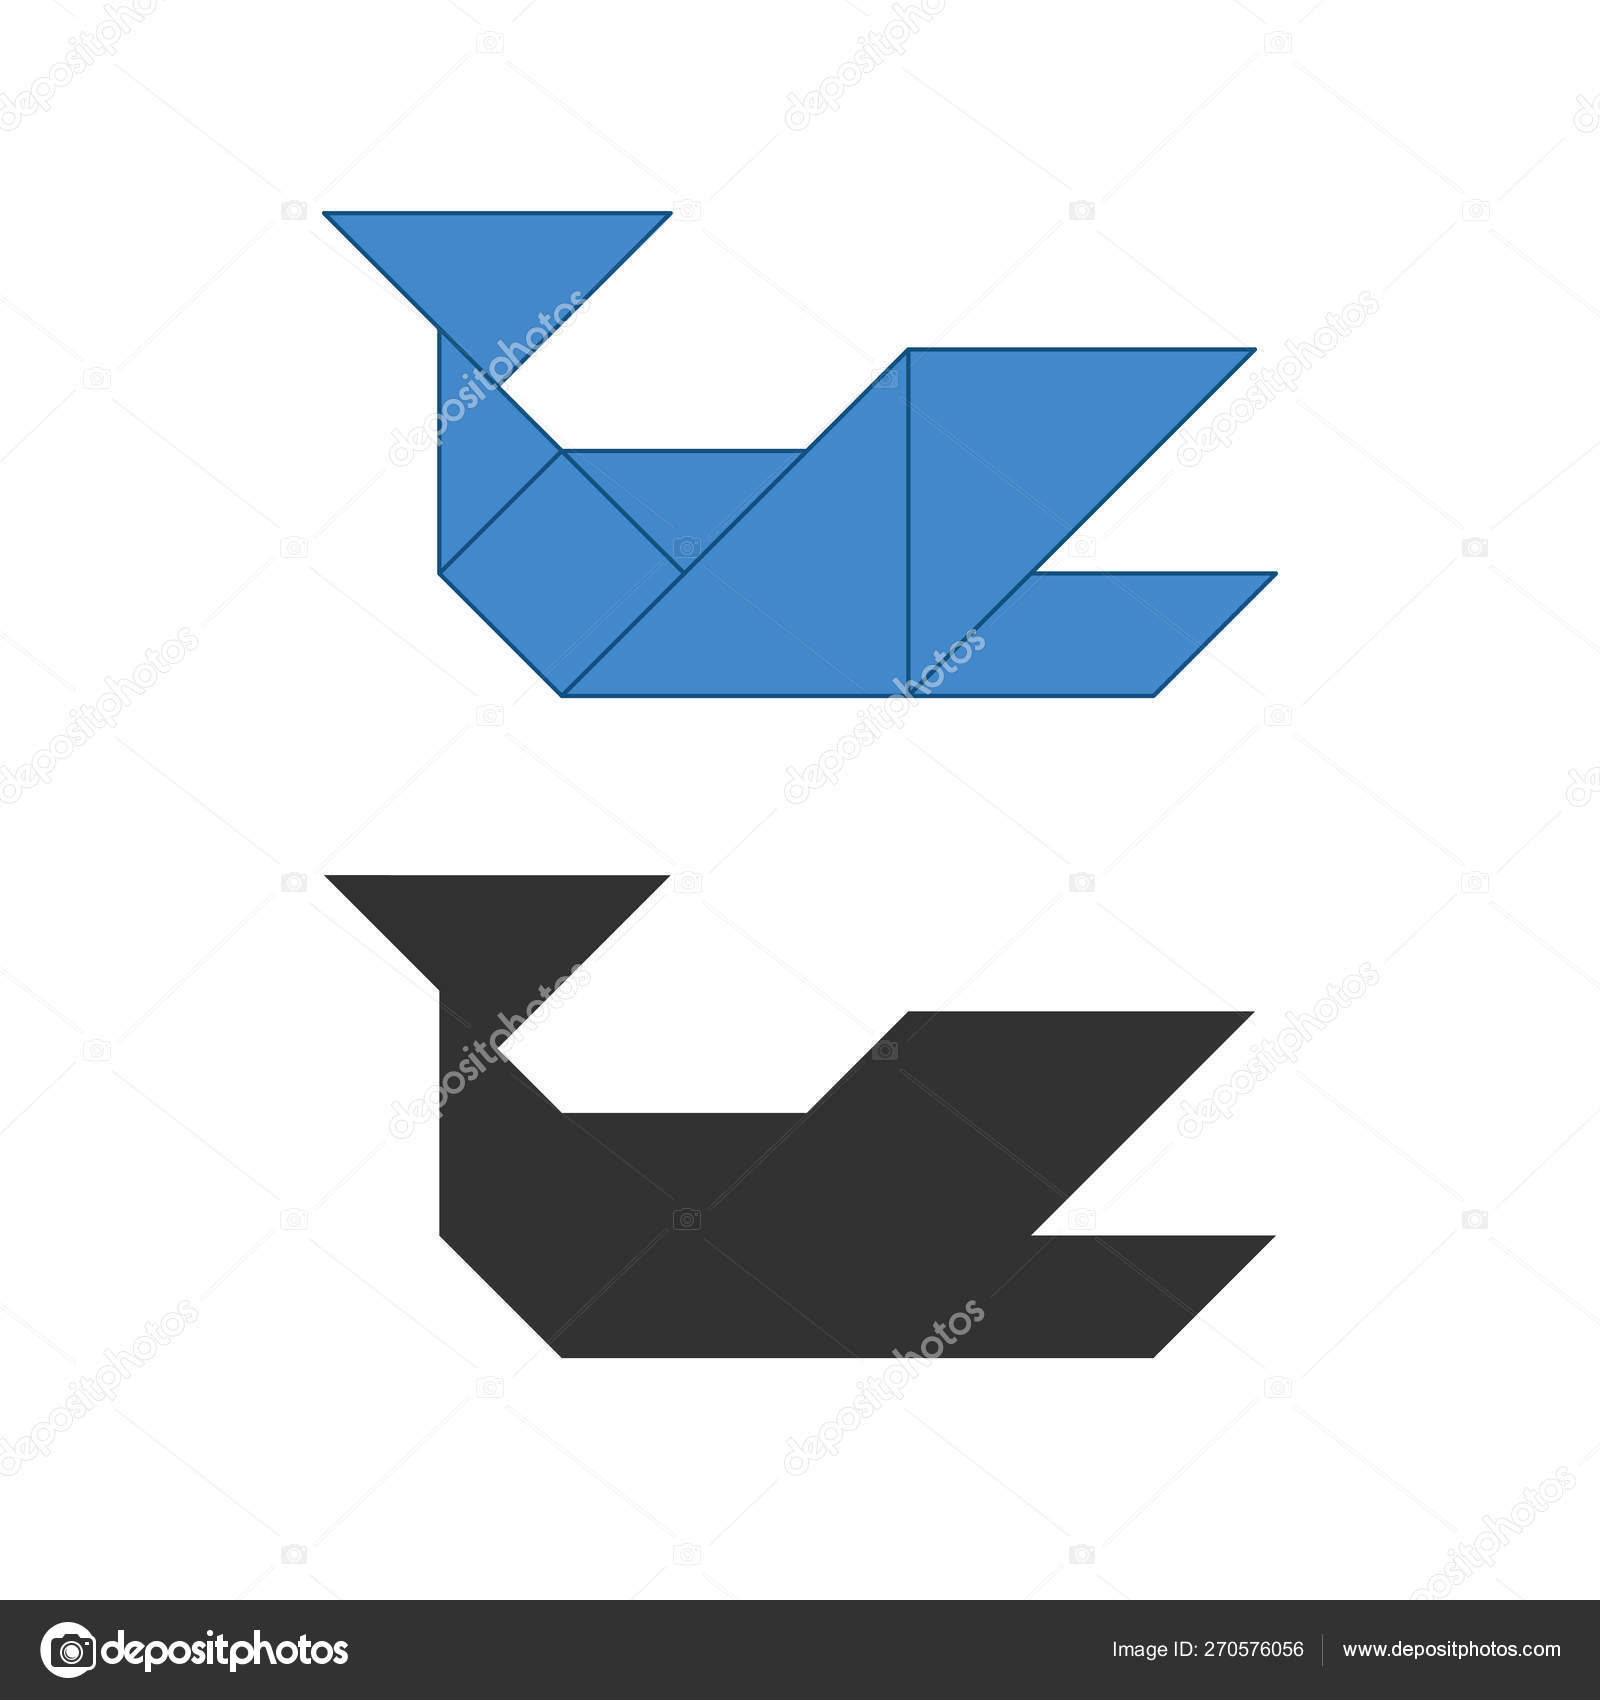 Whale Tangram  Traditional Chinese dissection puzzle, seven tiling